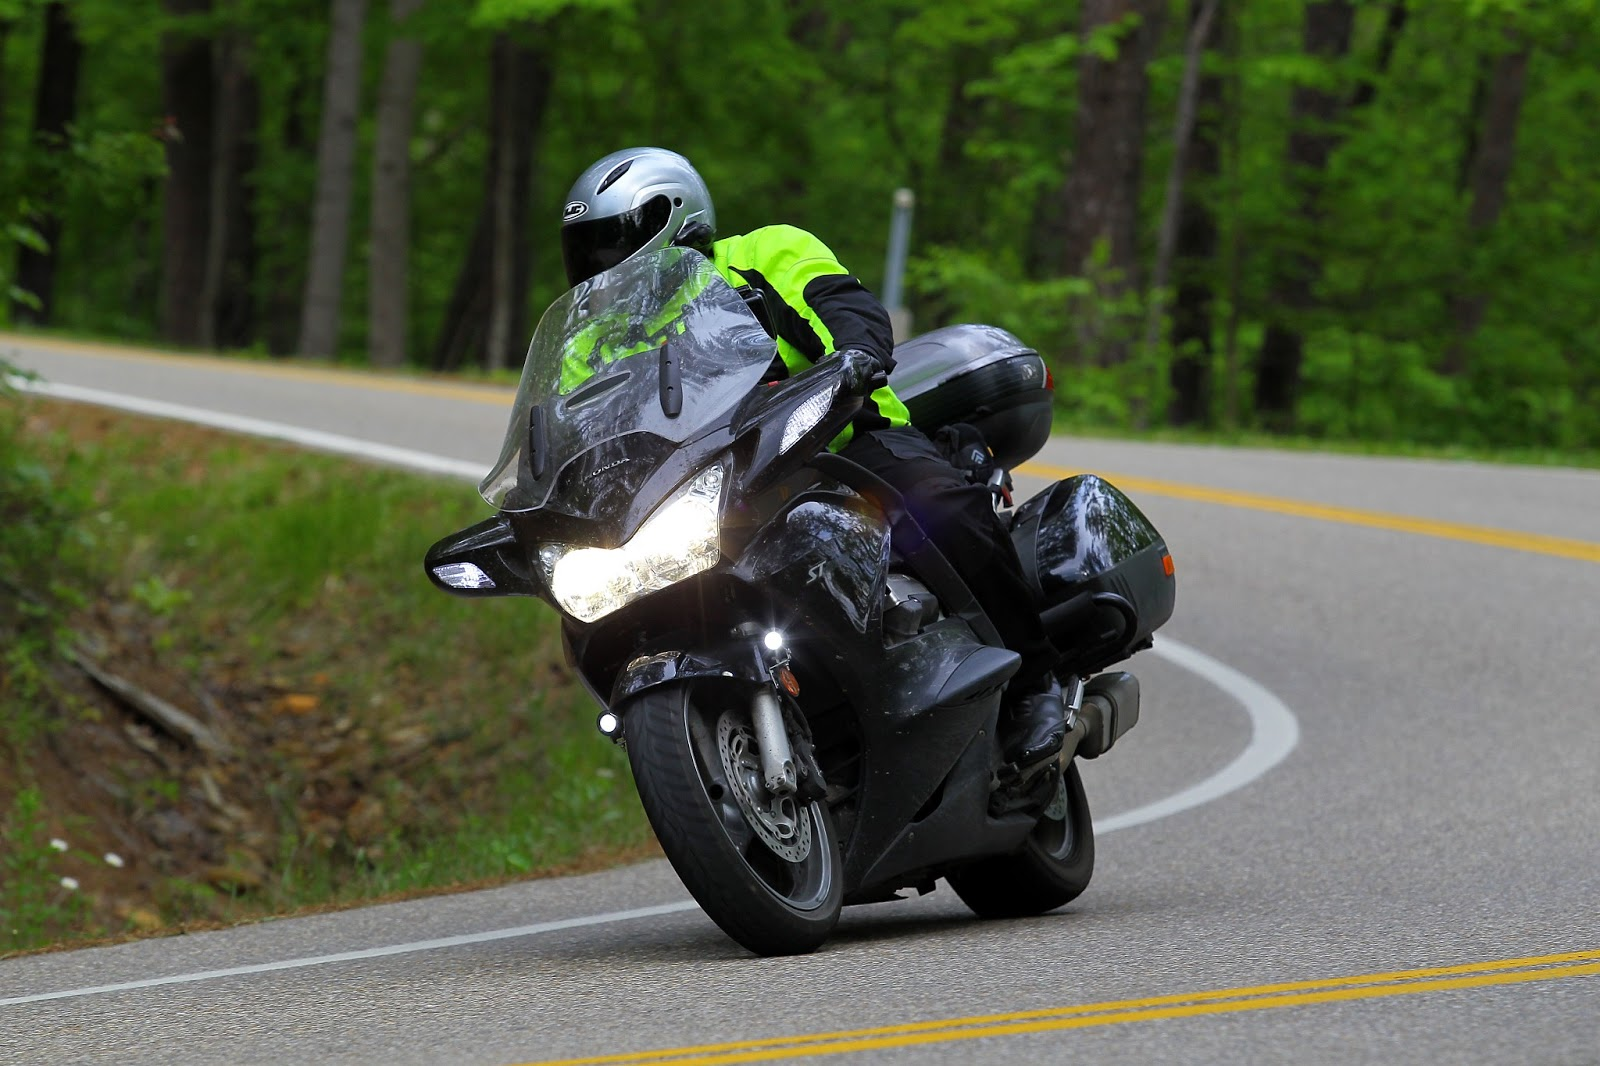 medium resolution of first introduced in 2003 and largely unchanged through 2014 honda s st1300 remains a solid if somewhat dated performer the bike is big and heavy 730